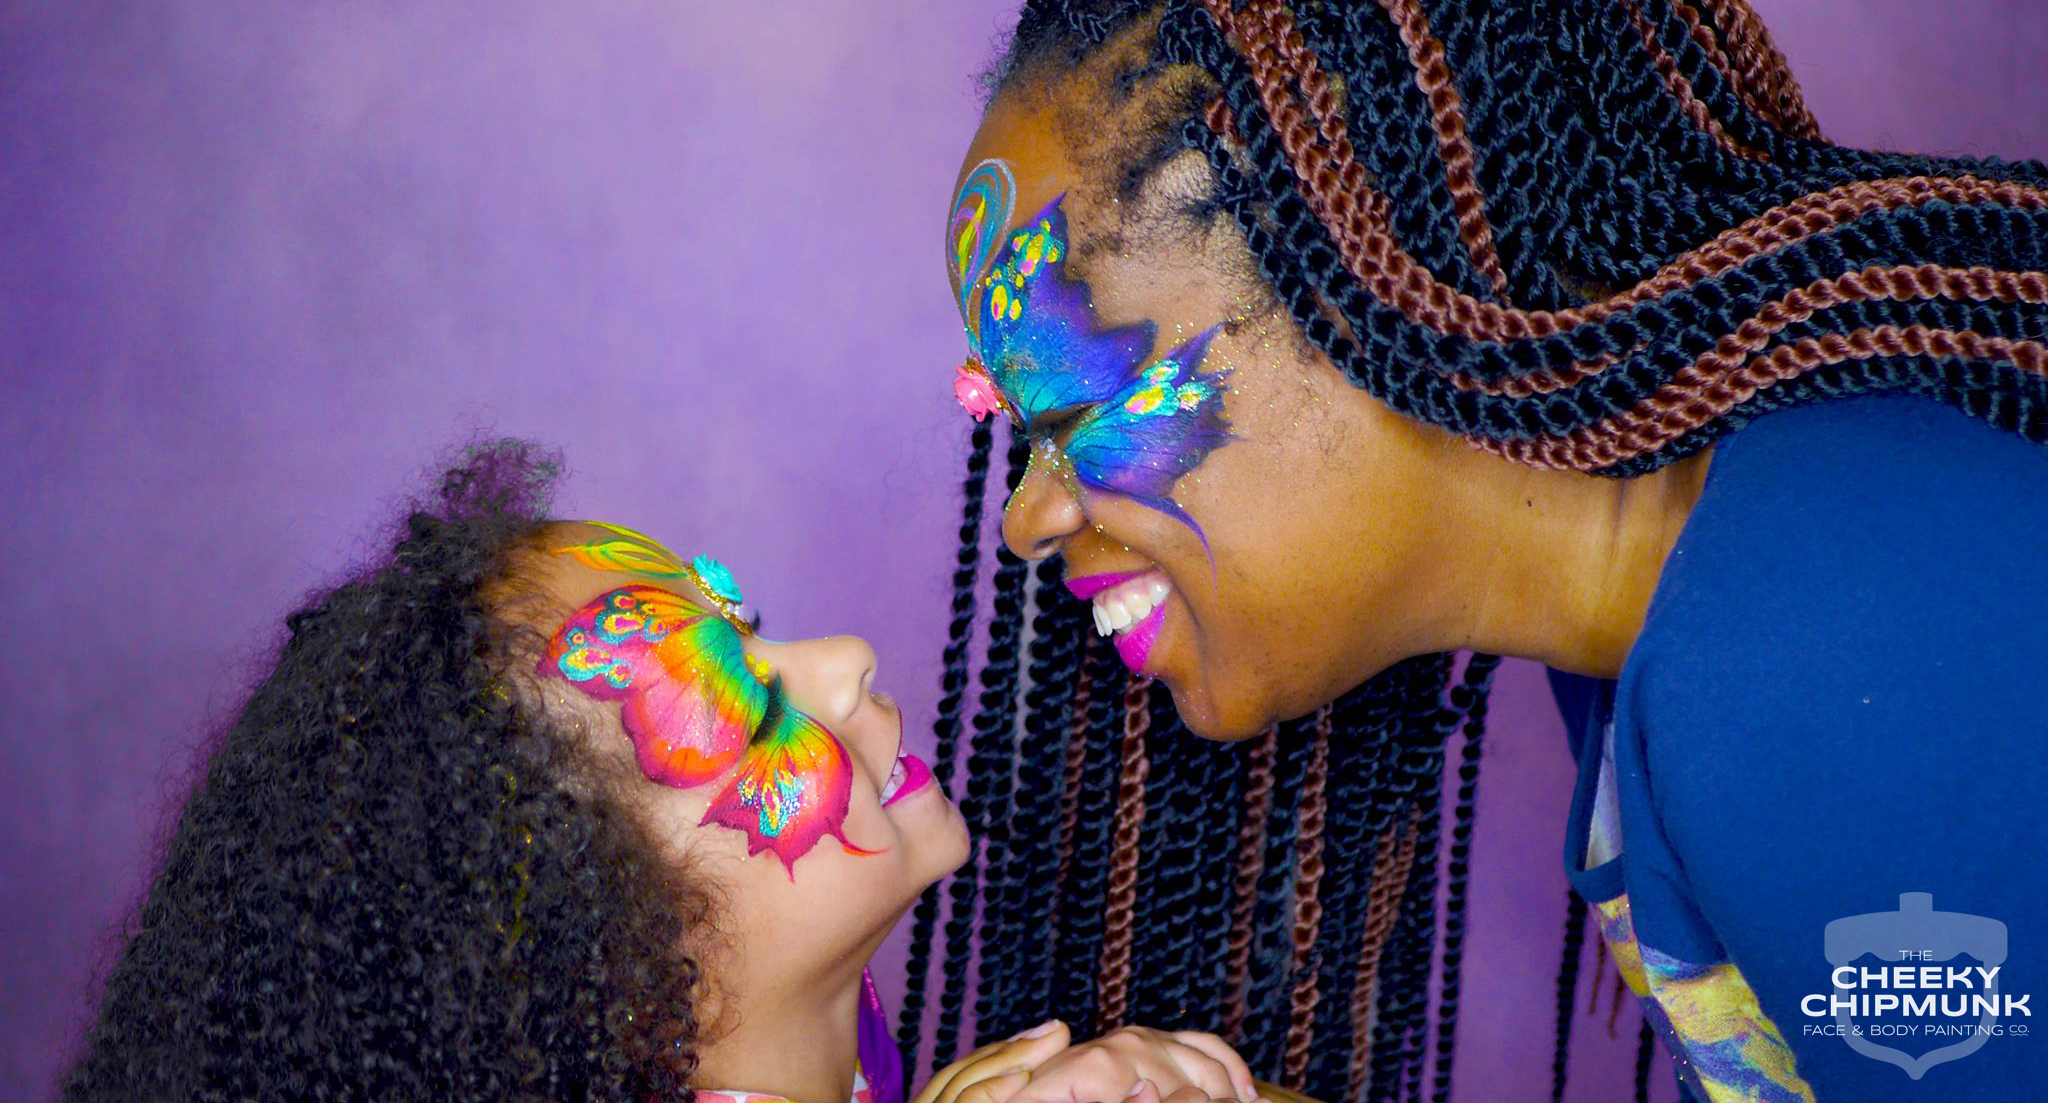 lenore-koppelman-the-cheeky-chipmunk-nyc-face-painting-butterfly-mother-daughter-mothers-day-silly-farm-faba-tv-fabatv-rainbow-love-banner-size-nadine-aviya.jpg